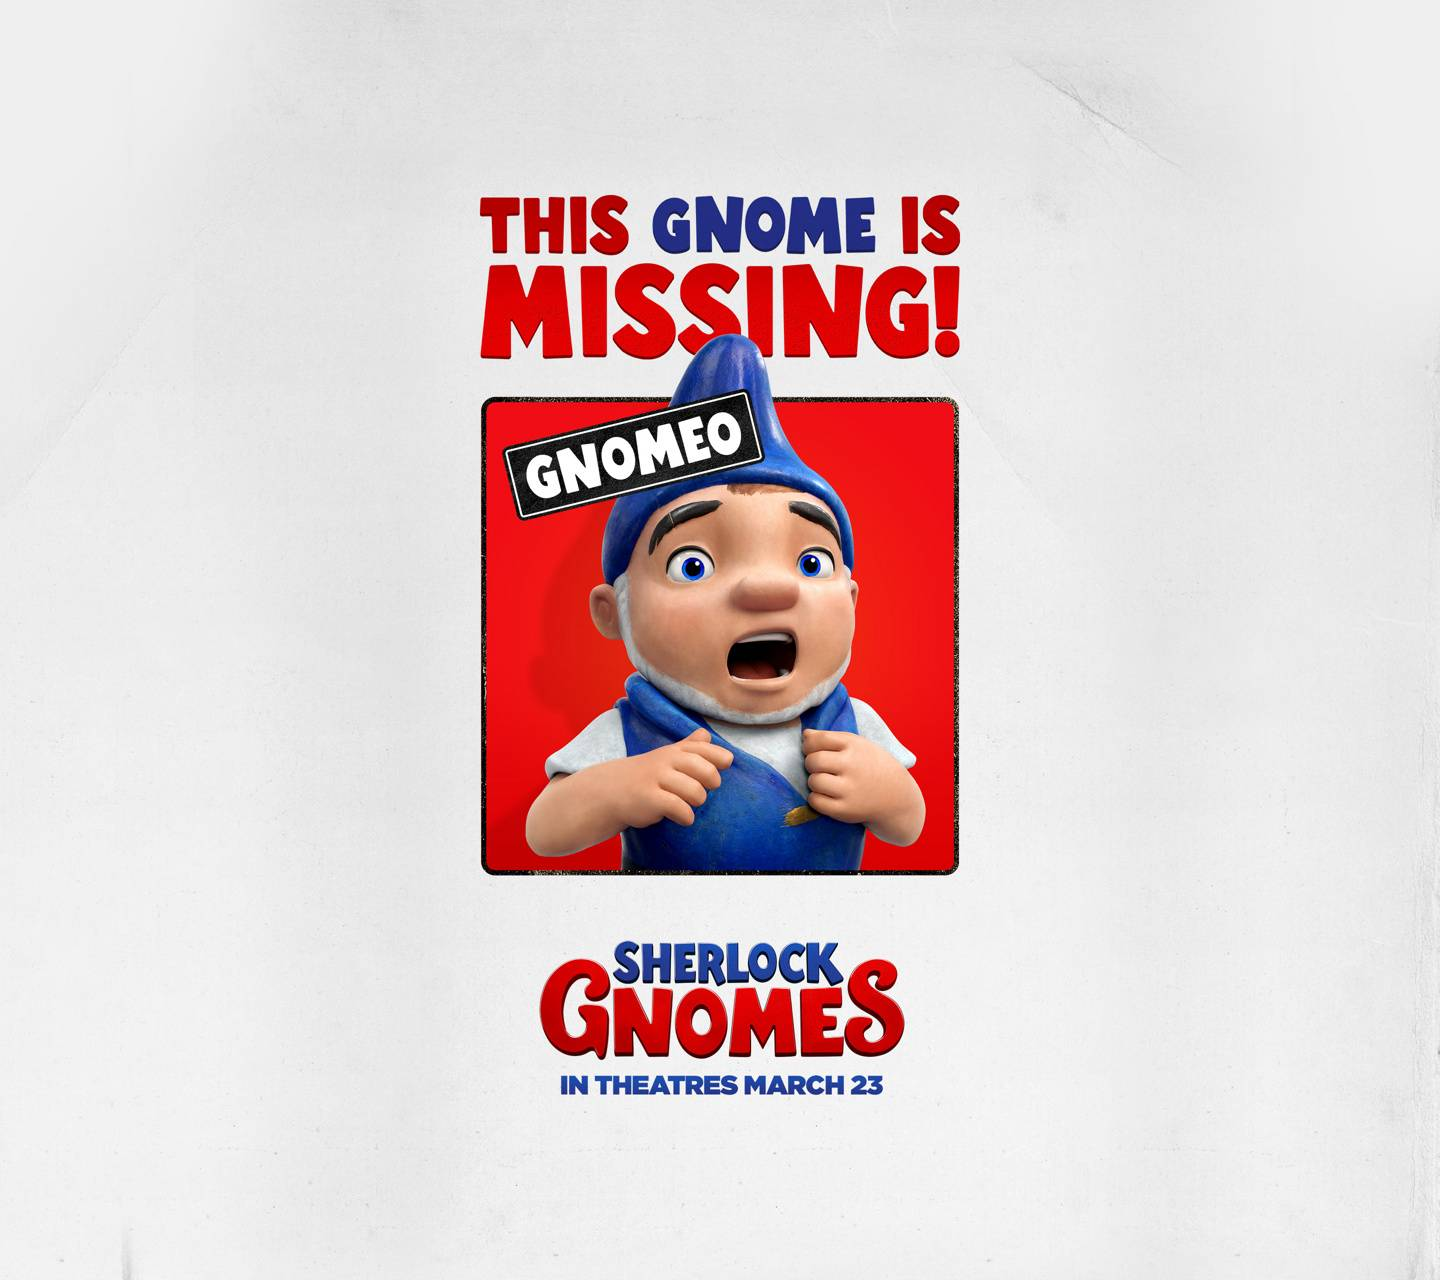 Gnomeo is missing